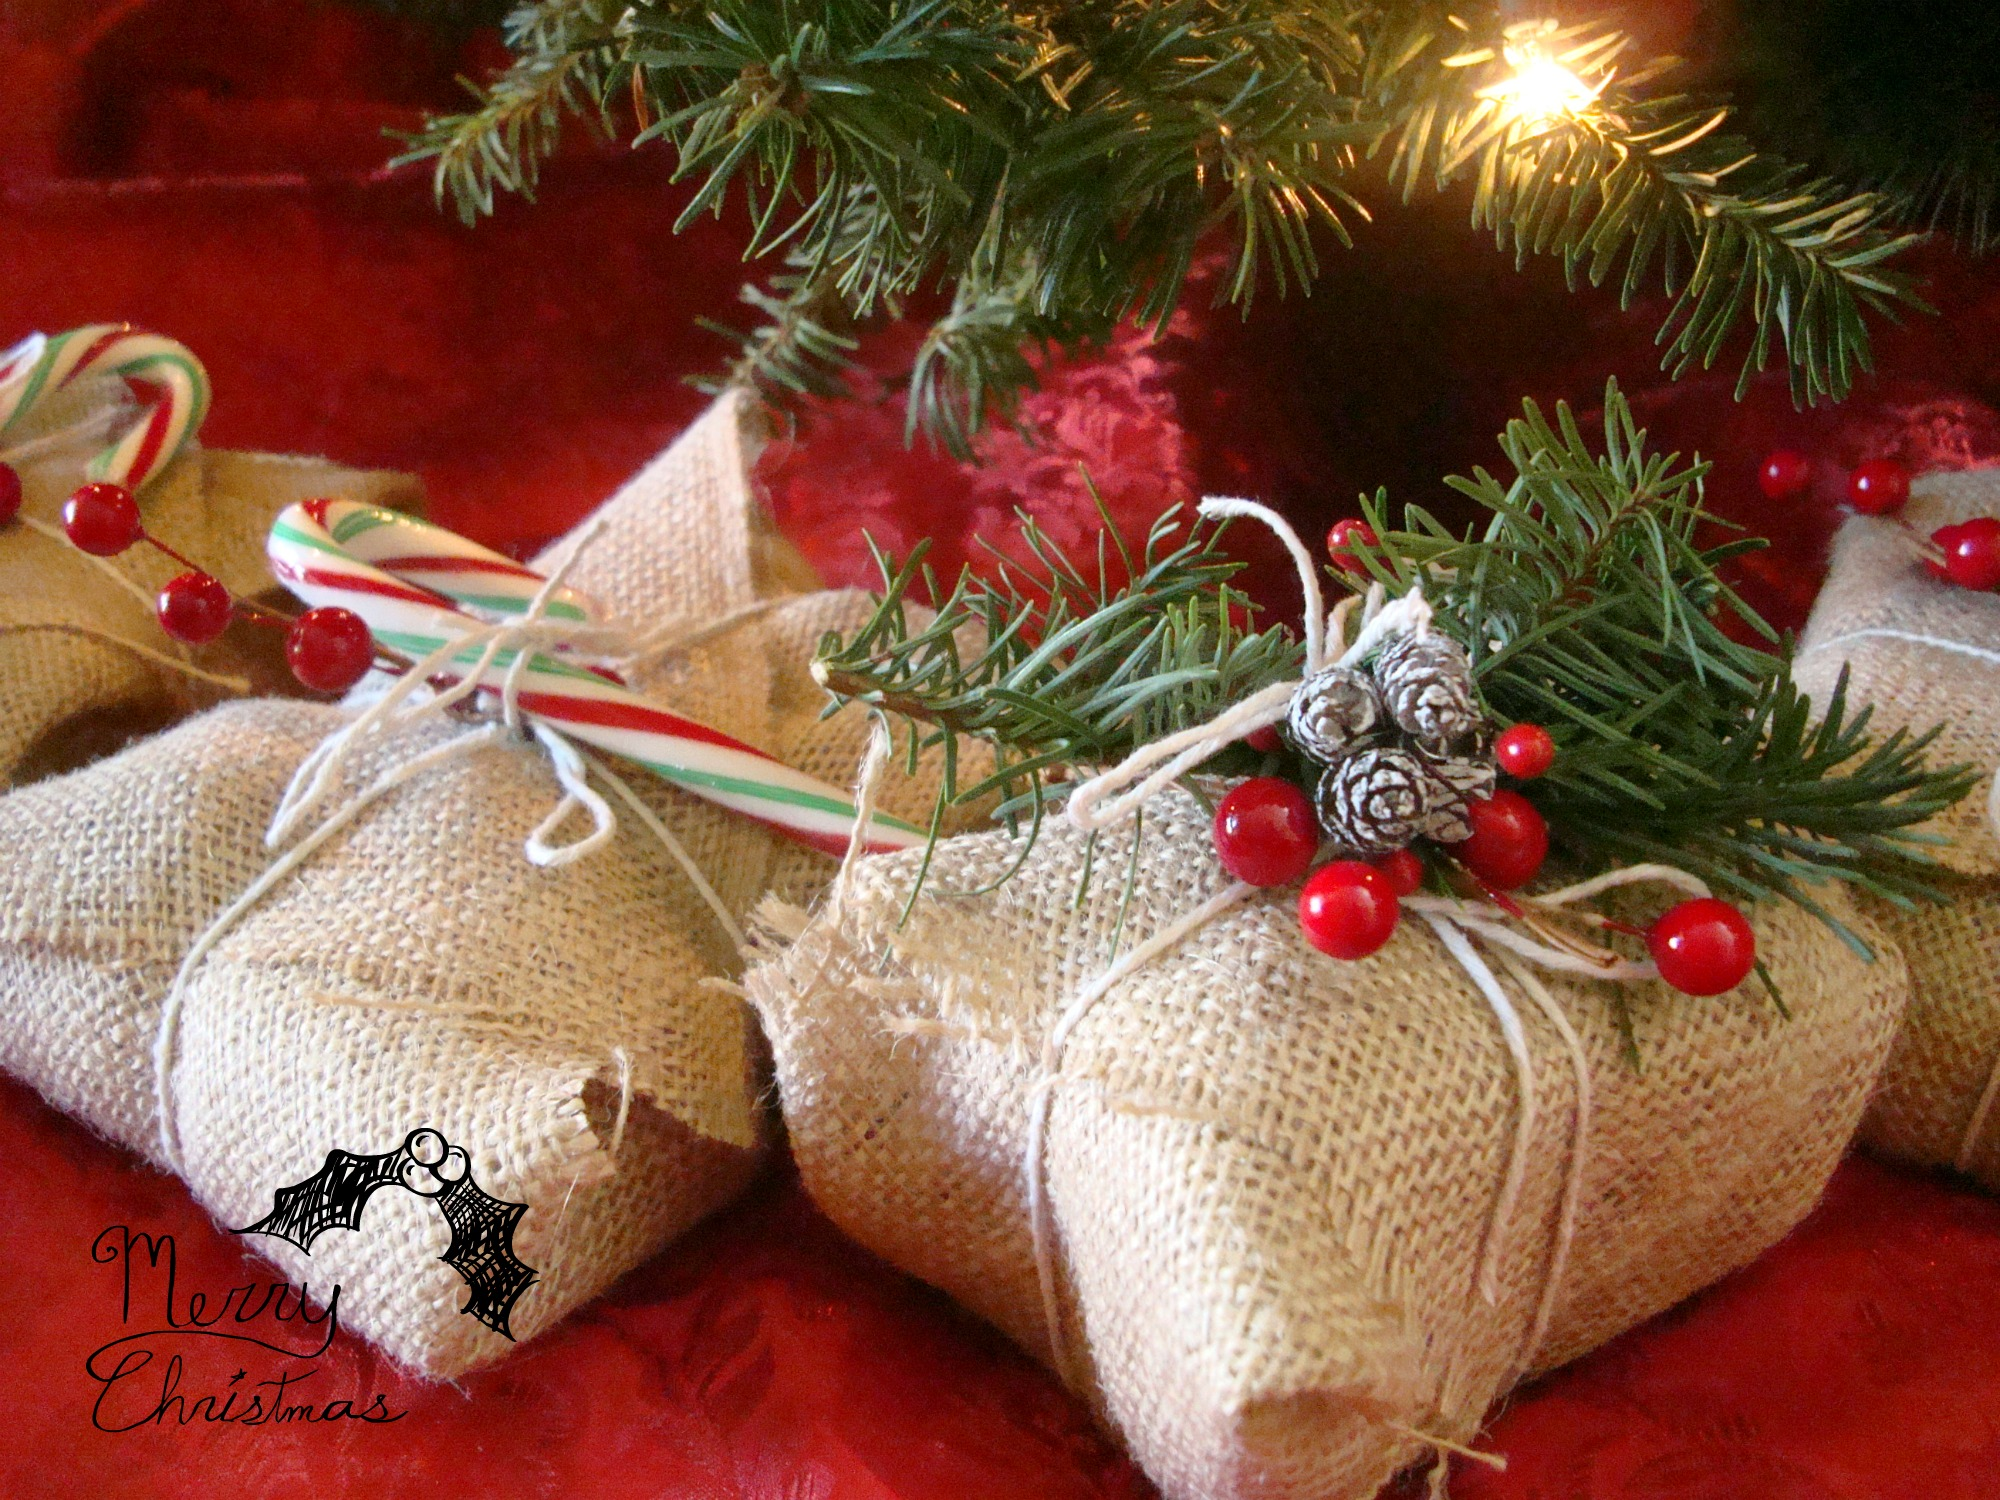 Create gorgeous but simple Christmas presents using solid wrapping paper and strips of quilting fabric in place of ribbon. Here are some Christmas gift wrapping ideas to inspire, along with step-by-step instructions to get the look.